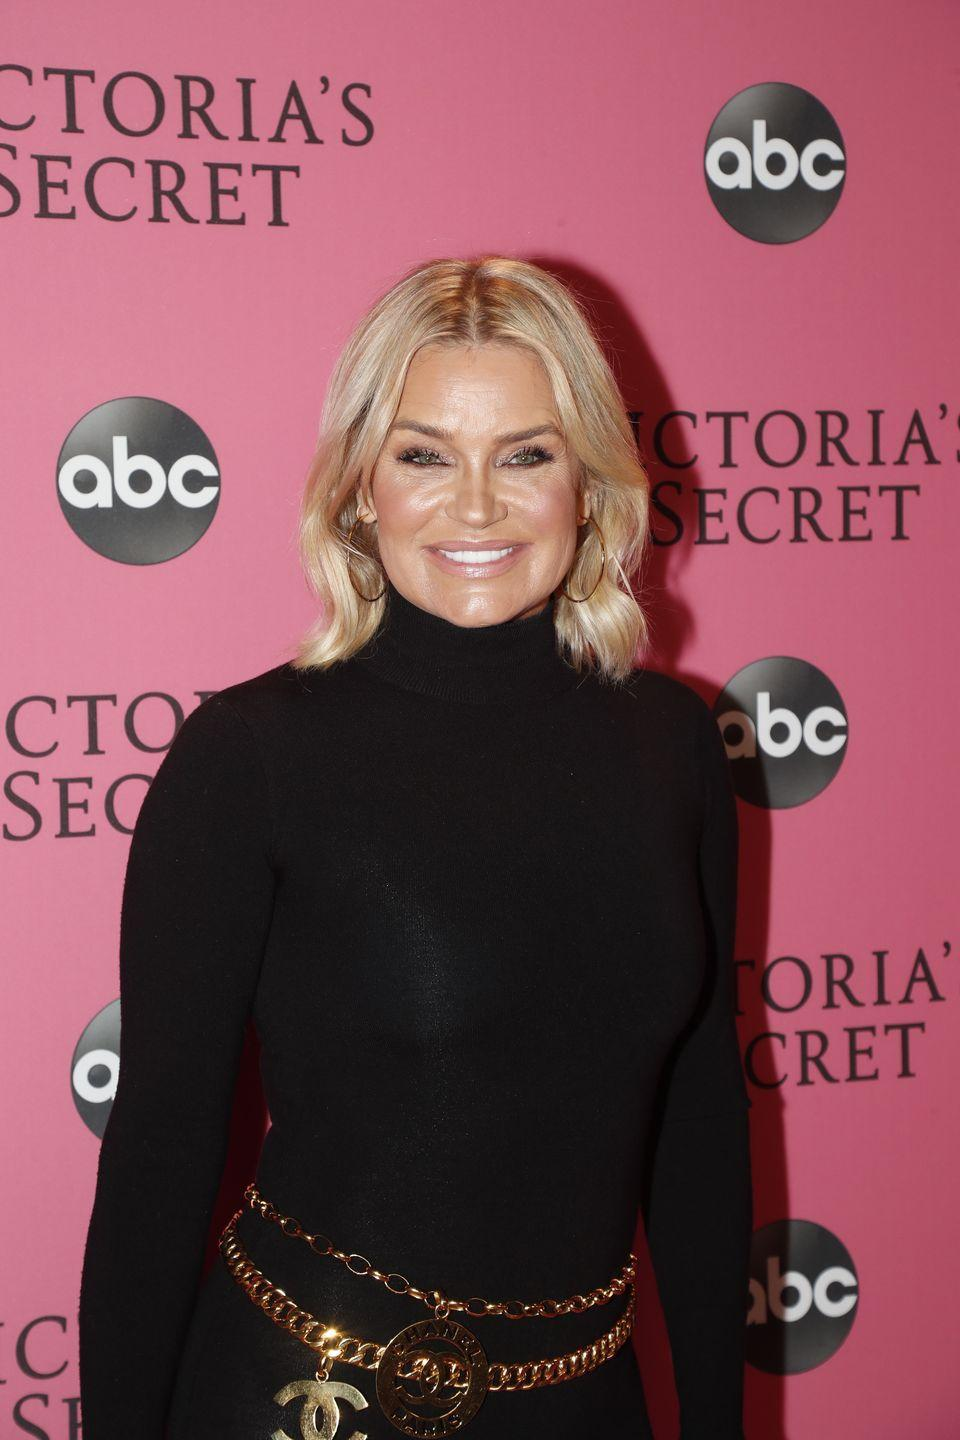 """<p>""""Fifty five and smiling from the inside out...finally back to the original 1964,"""" Yolanda Hadid wrote in an Instagram caption. """"Living in a body free of breast implants, fillers, botox, extensions and all the bullshit I thought I needed in order to keep up with what society conditioned me to believe what a sexy woman should look like until the toxicity of it all almost killed me,"""" she wrote. Hadid has previously spoken out about how she stopped getting Botox injections and dermal fillers years ago after being diagnosed with Lyme.</p>"""